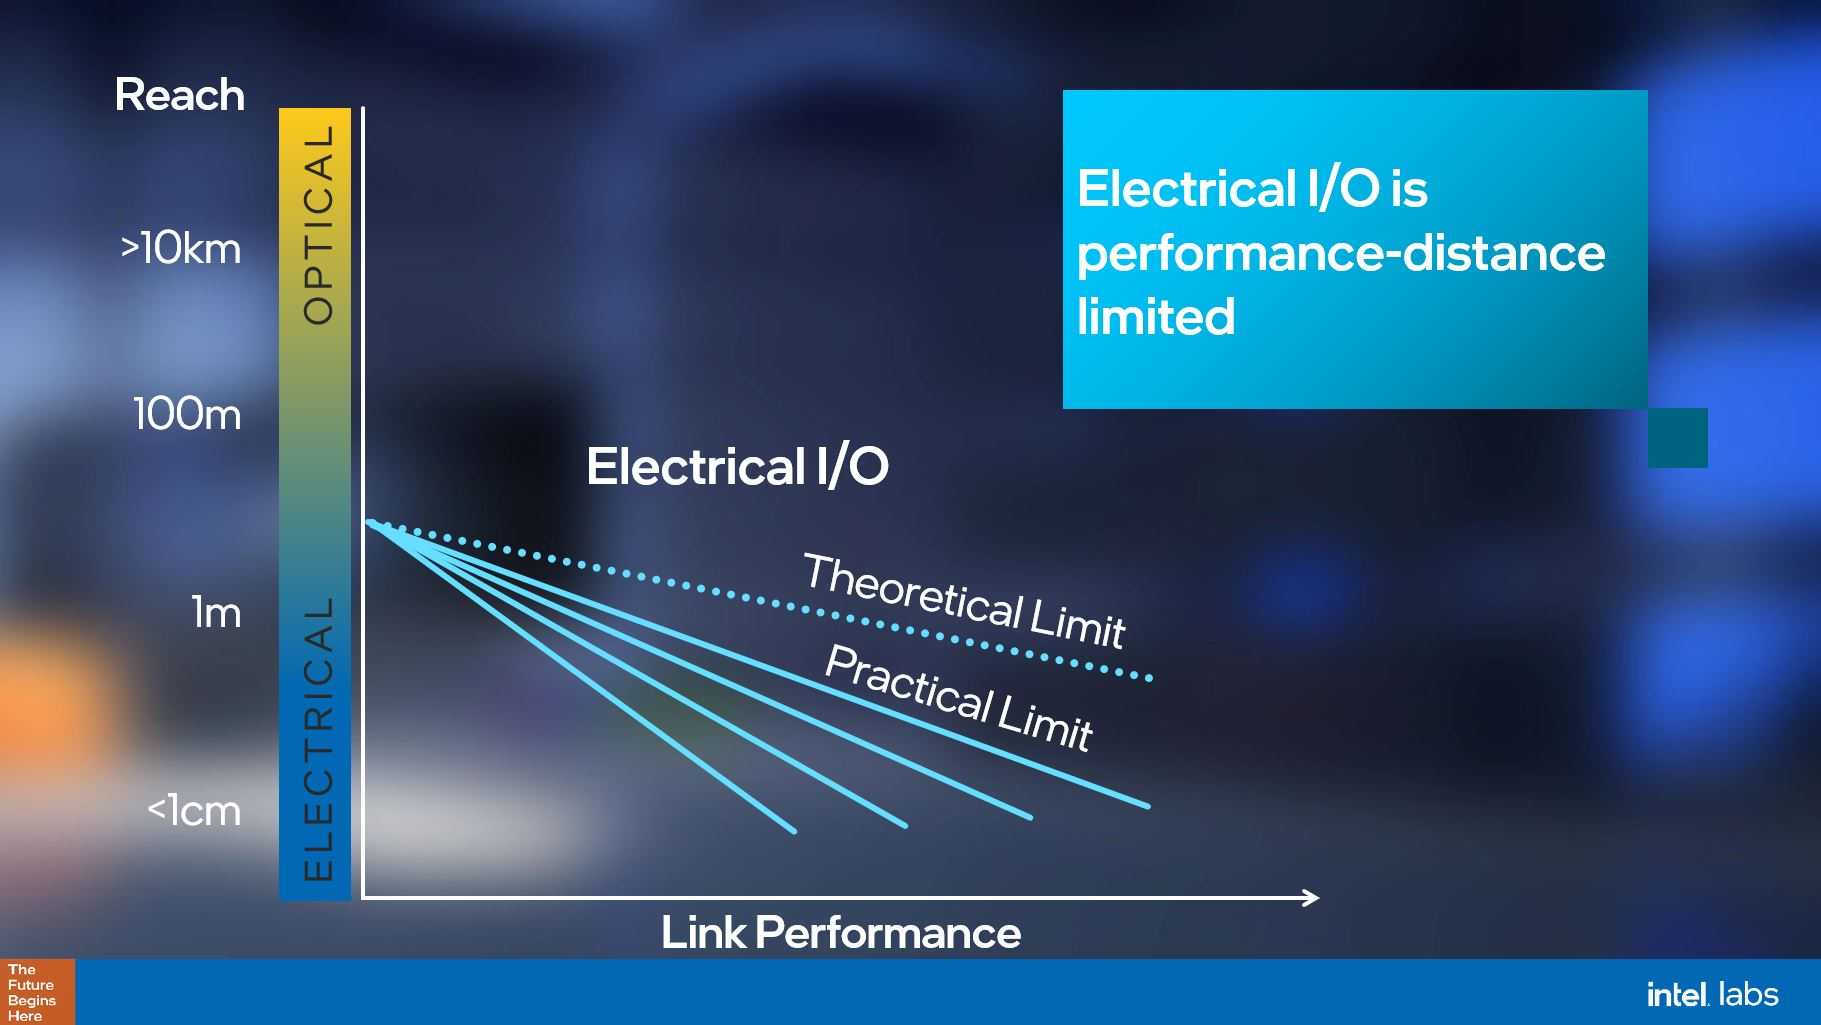 Intel Electrical IO Power Distance Limits